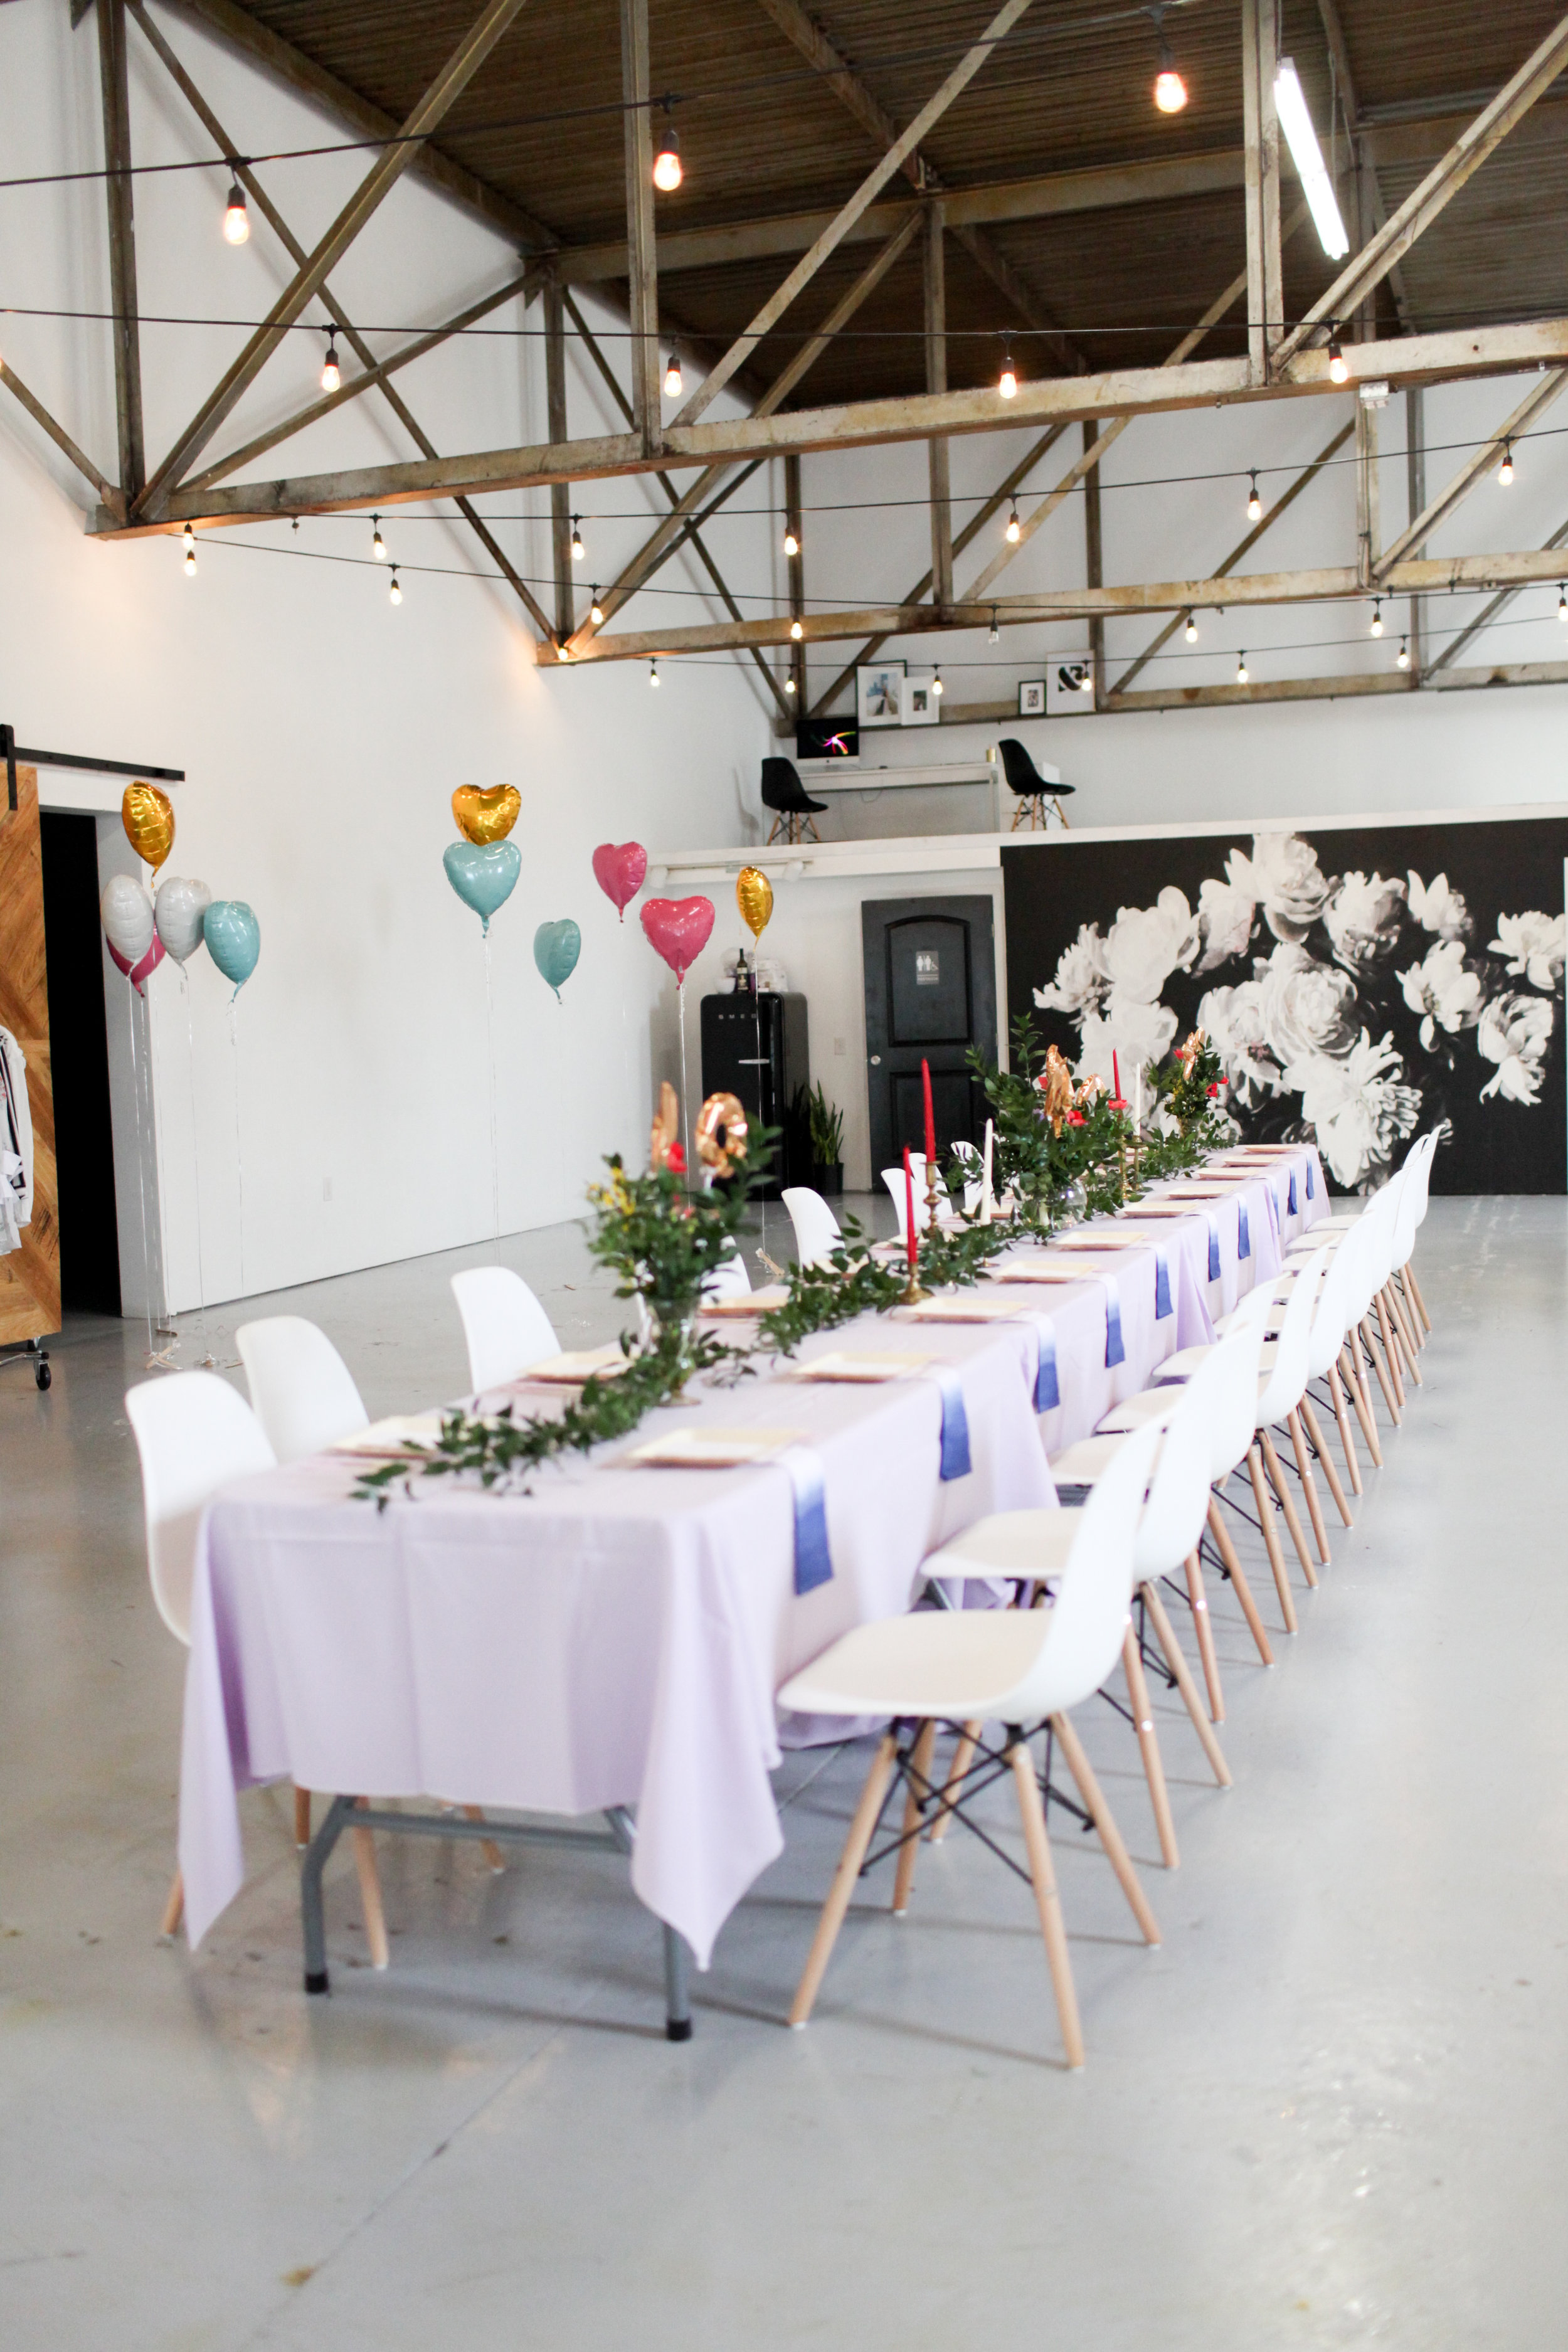 SERVICES... - BUILT UNIQUELY FOR YOUR ONE OF A KIND EVENT